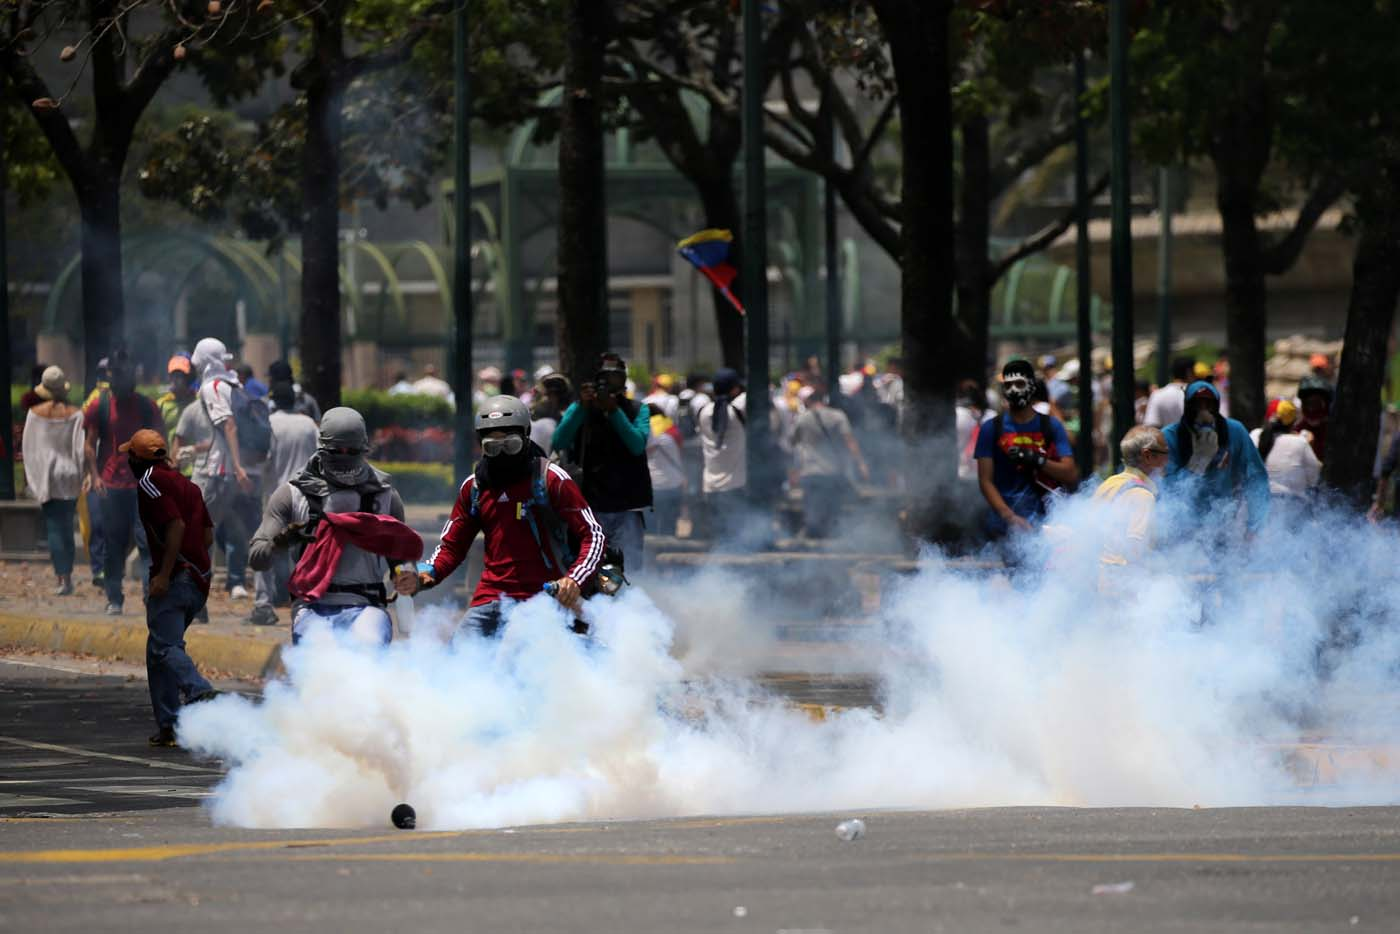 Demonstrators clash with riot police at a rally against Venezuela's President Nicolas Maduro's government in Caracas, Venezuela April 10, 2017. REUTERS/Carlos Garcia Rawlins